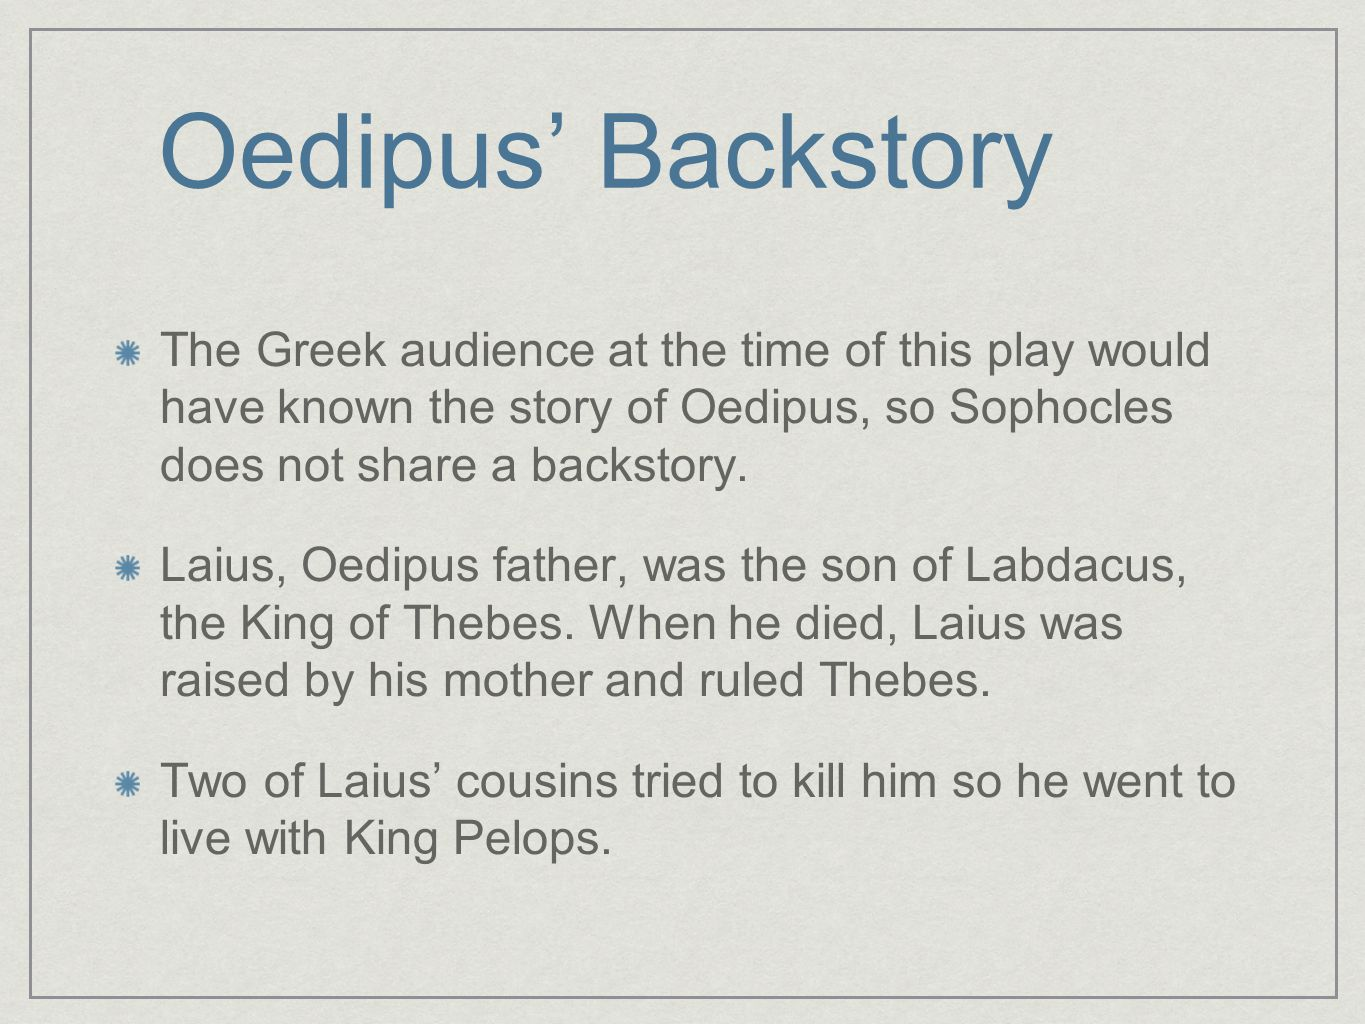 Oedipus' Backstory The Greek audience at the time of this play would have known the story of Oedipus, so Sophocles does not share a backstory. Laius,